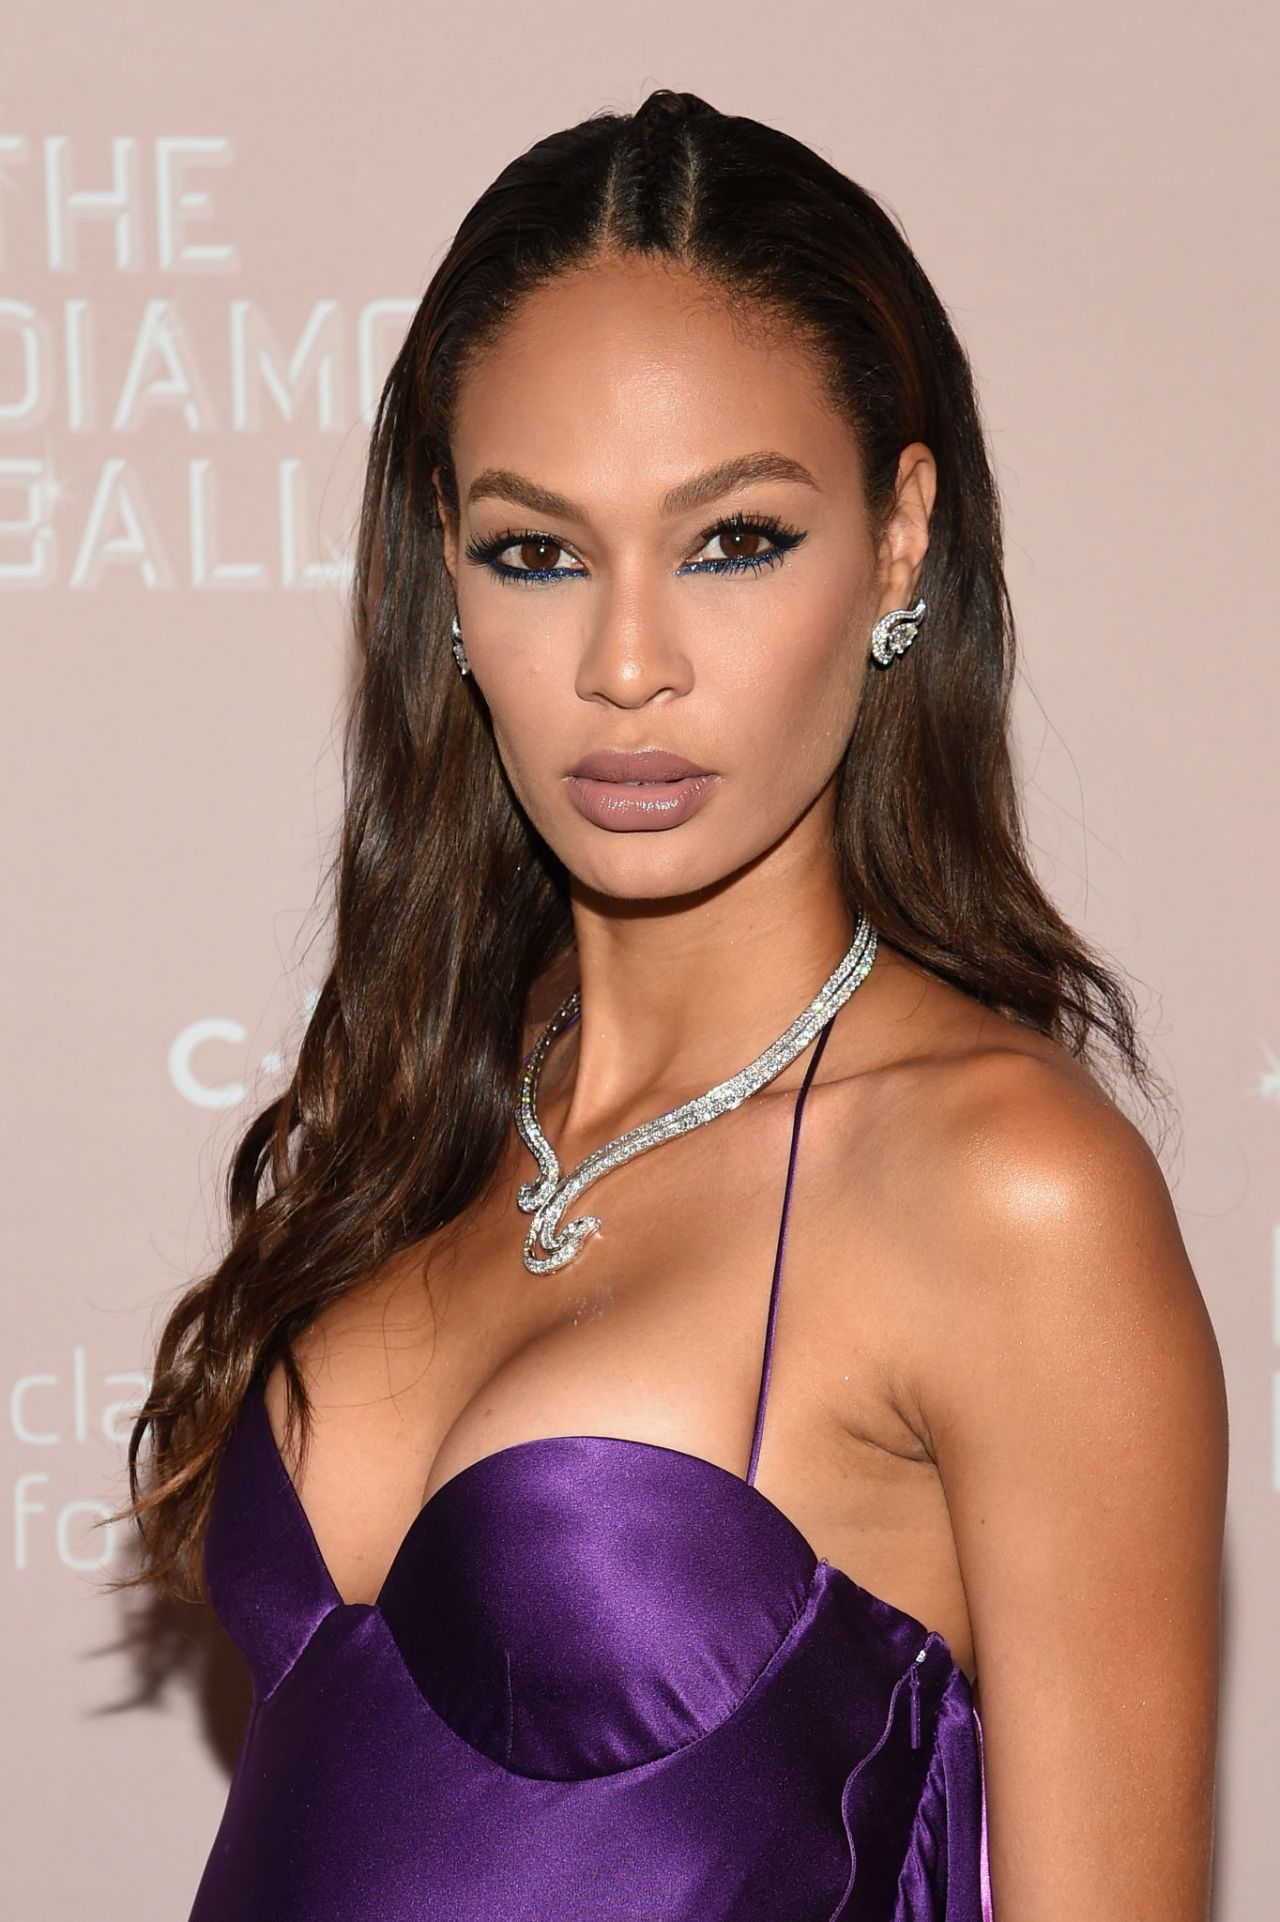 Joan Smalls Hot Archives - Joan Smalls Hot Archives